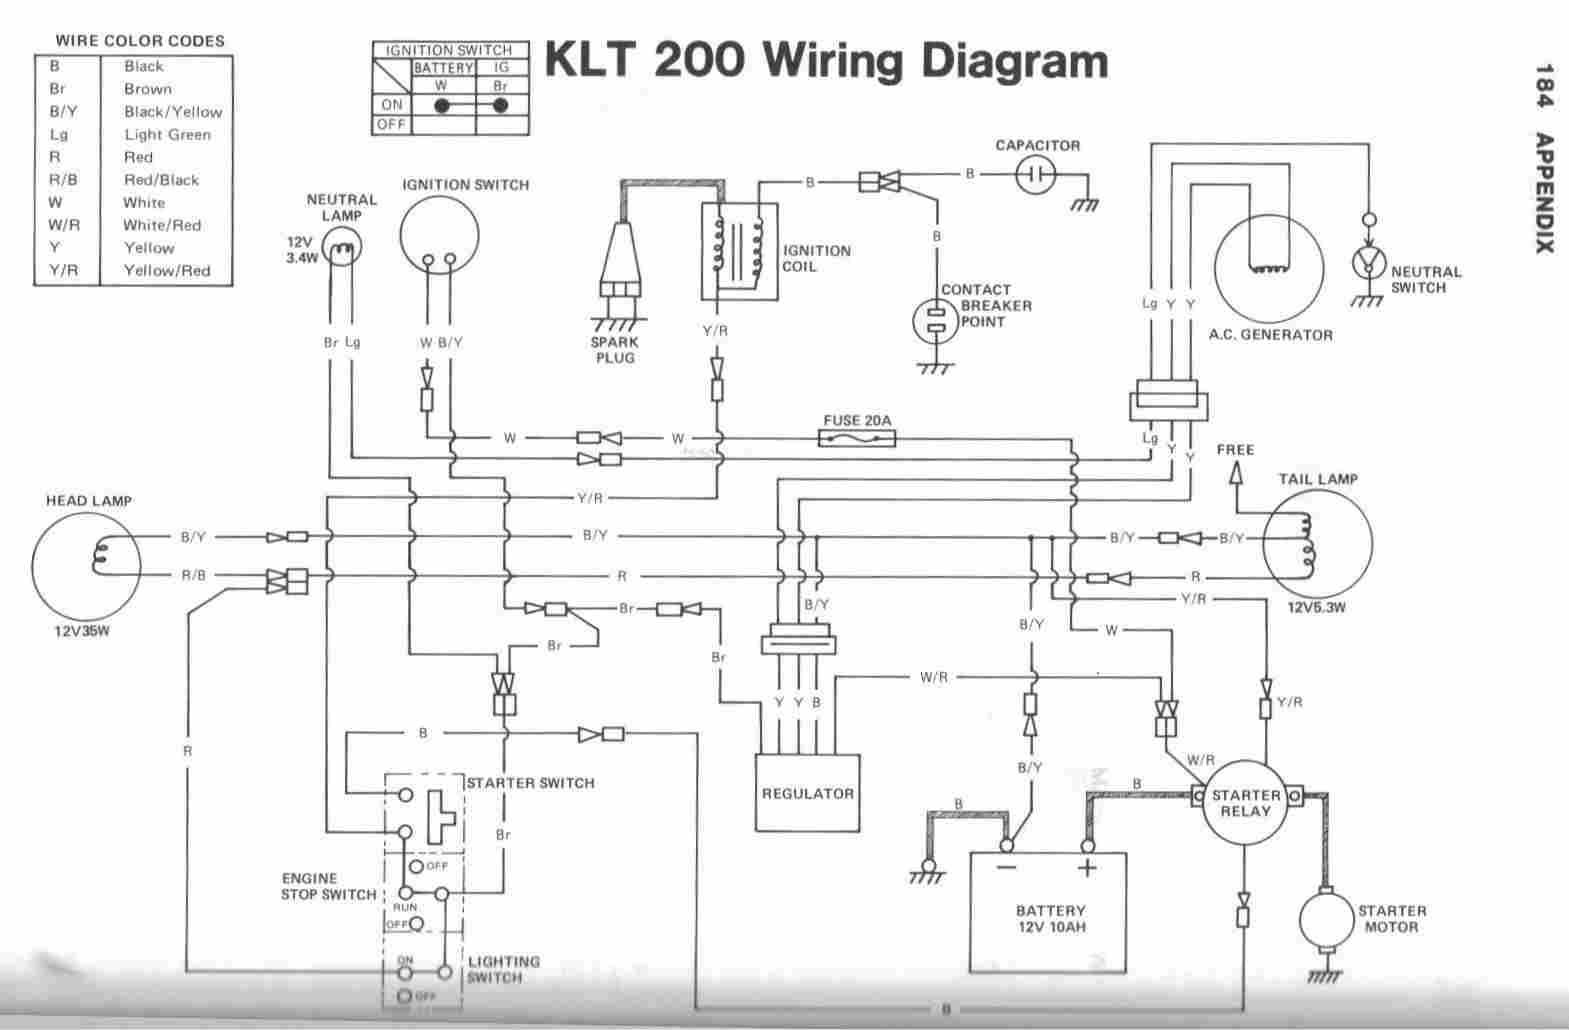 Residential Electrical Wiring Diagrams Pdf Easy Routing | Submersible well  pump, Electrical wiring diagram, Electrical circuit diagramPinterest